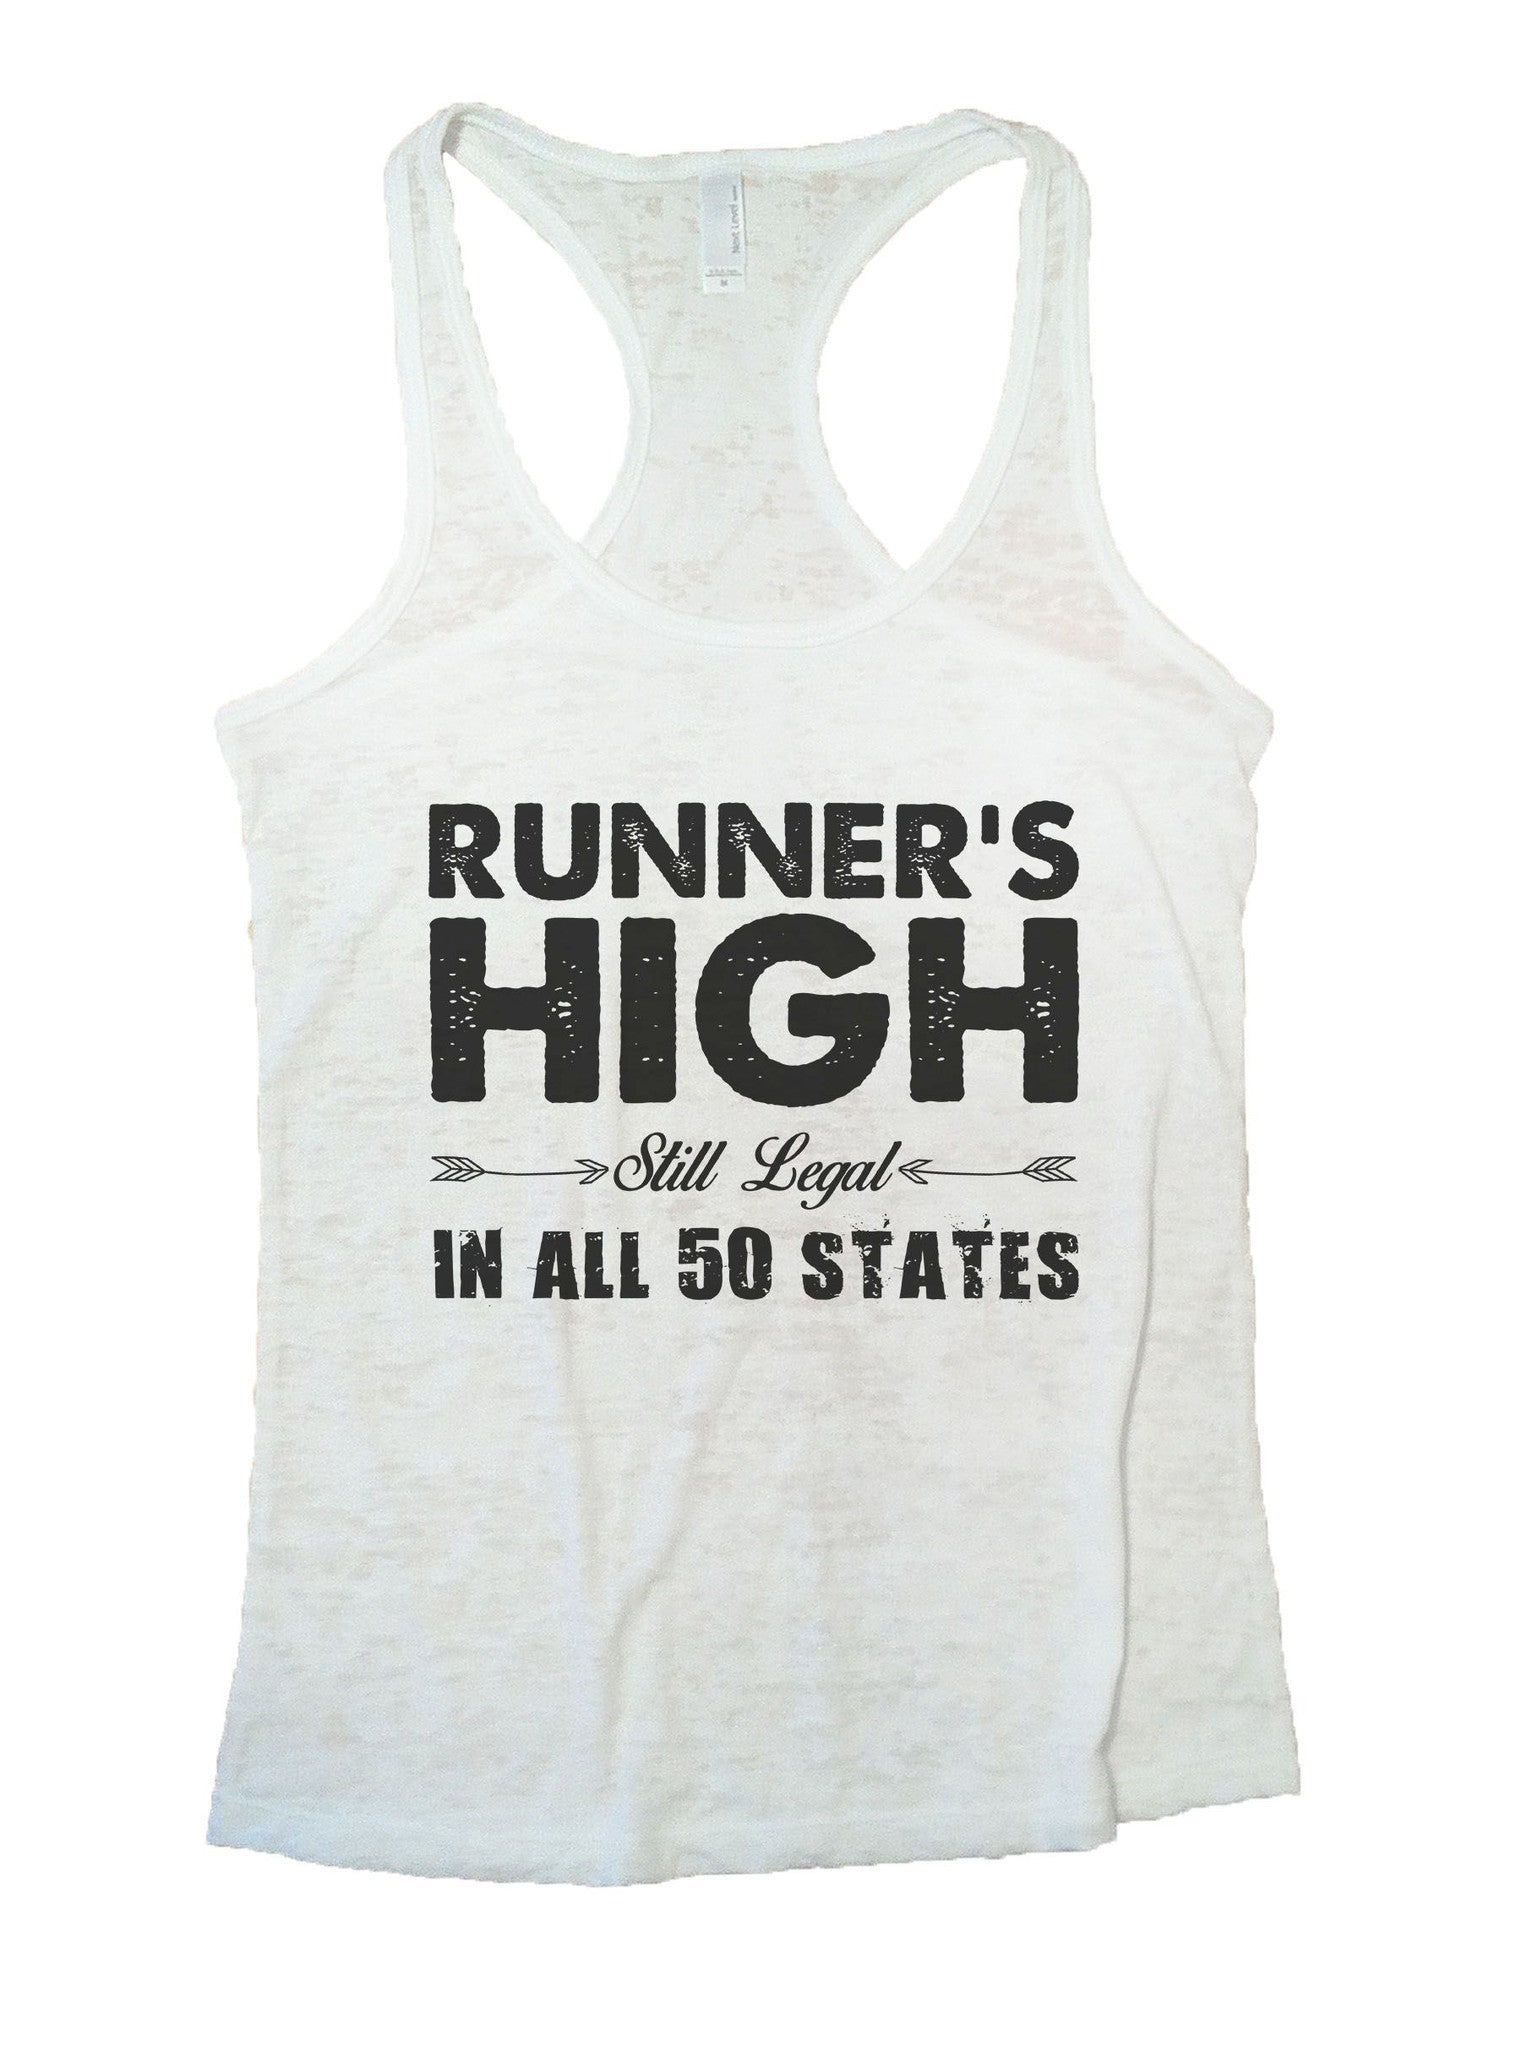 Runner's High Still Legal In All 50 States Burnout Tank Top By BurnoutTankTops.com - 902 - Funny Shirts Tank Tops Burnouts and Triblends  - 6